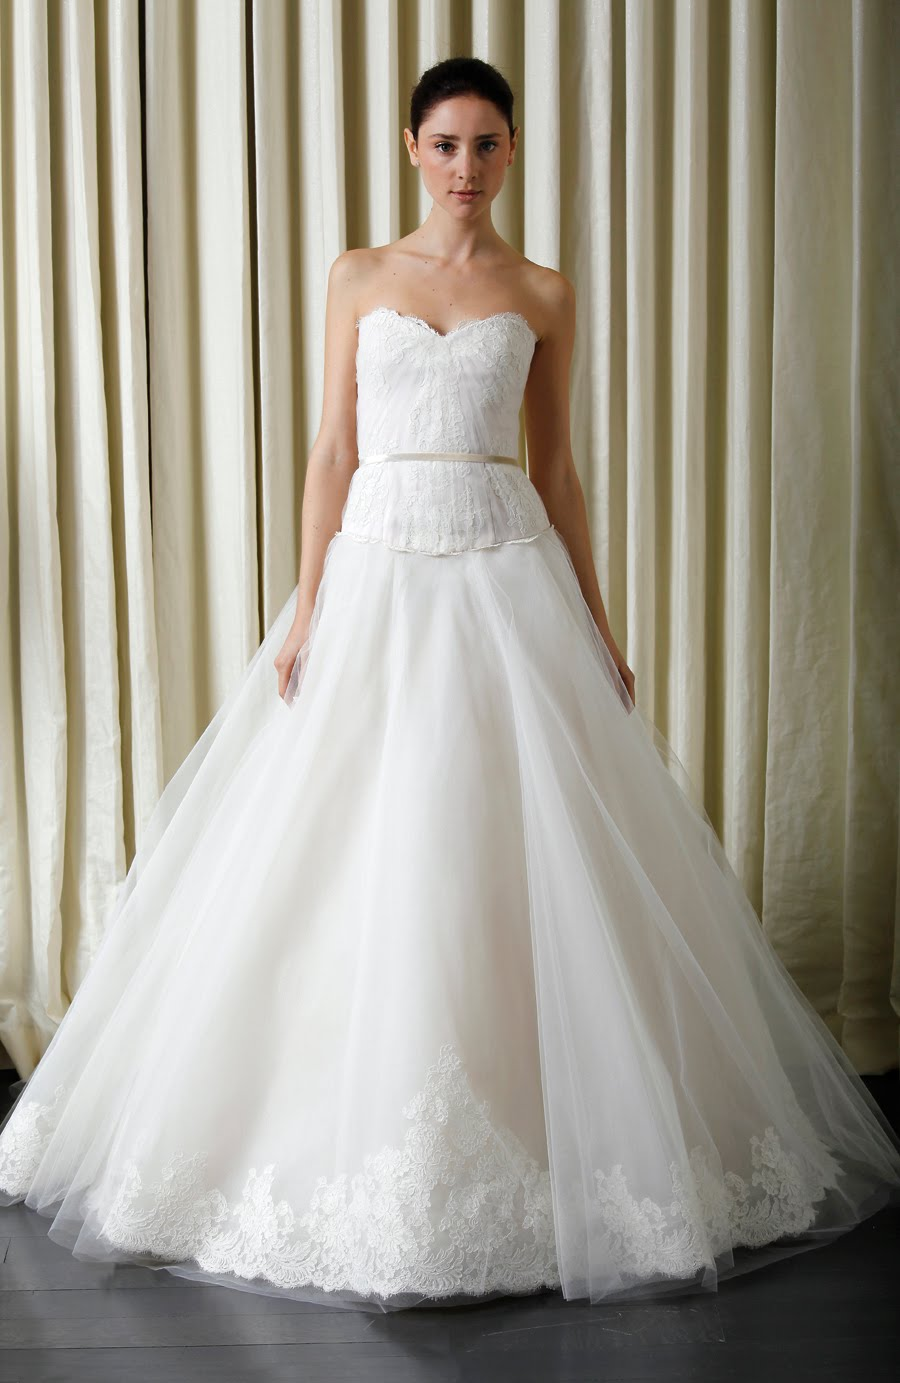 Wedding Dresses Perth : Couture wedding dresses perth fashion trends